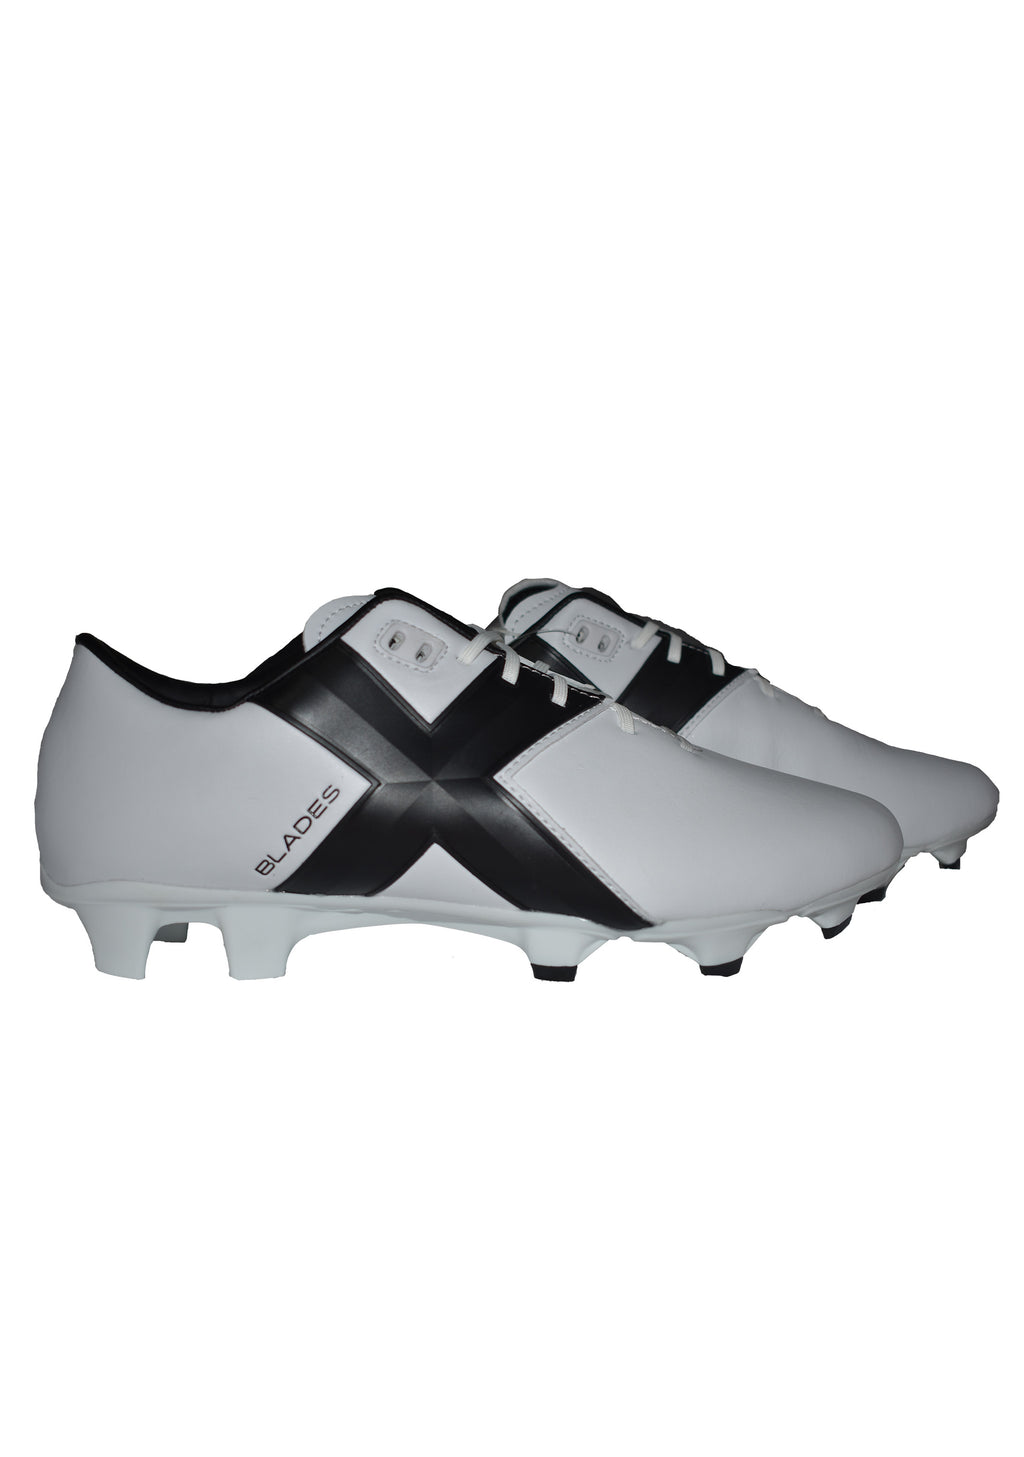 XBLADES JET 17 FOOTBALL BOOTS MENS <br> WHITE/BLACK